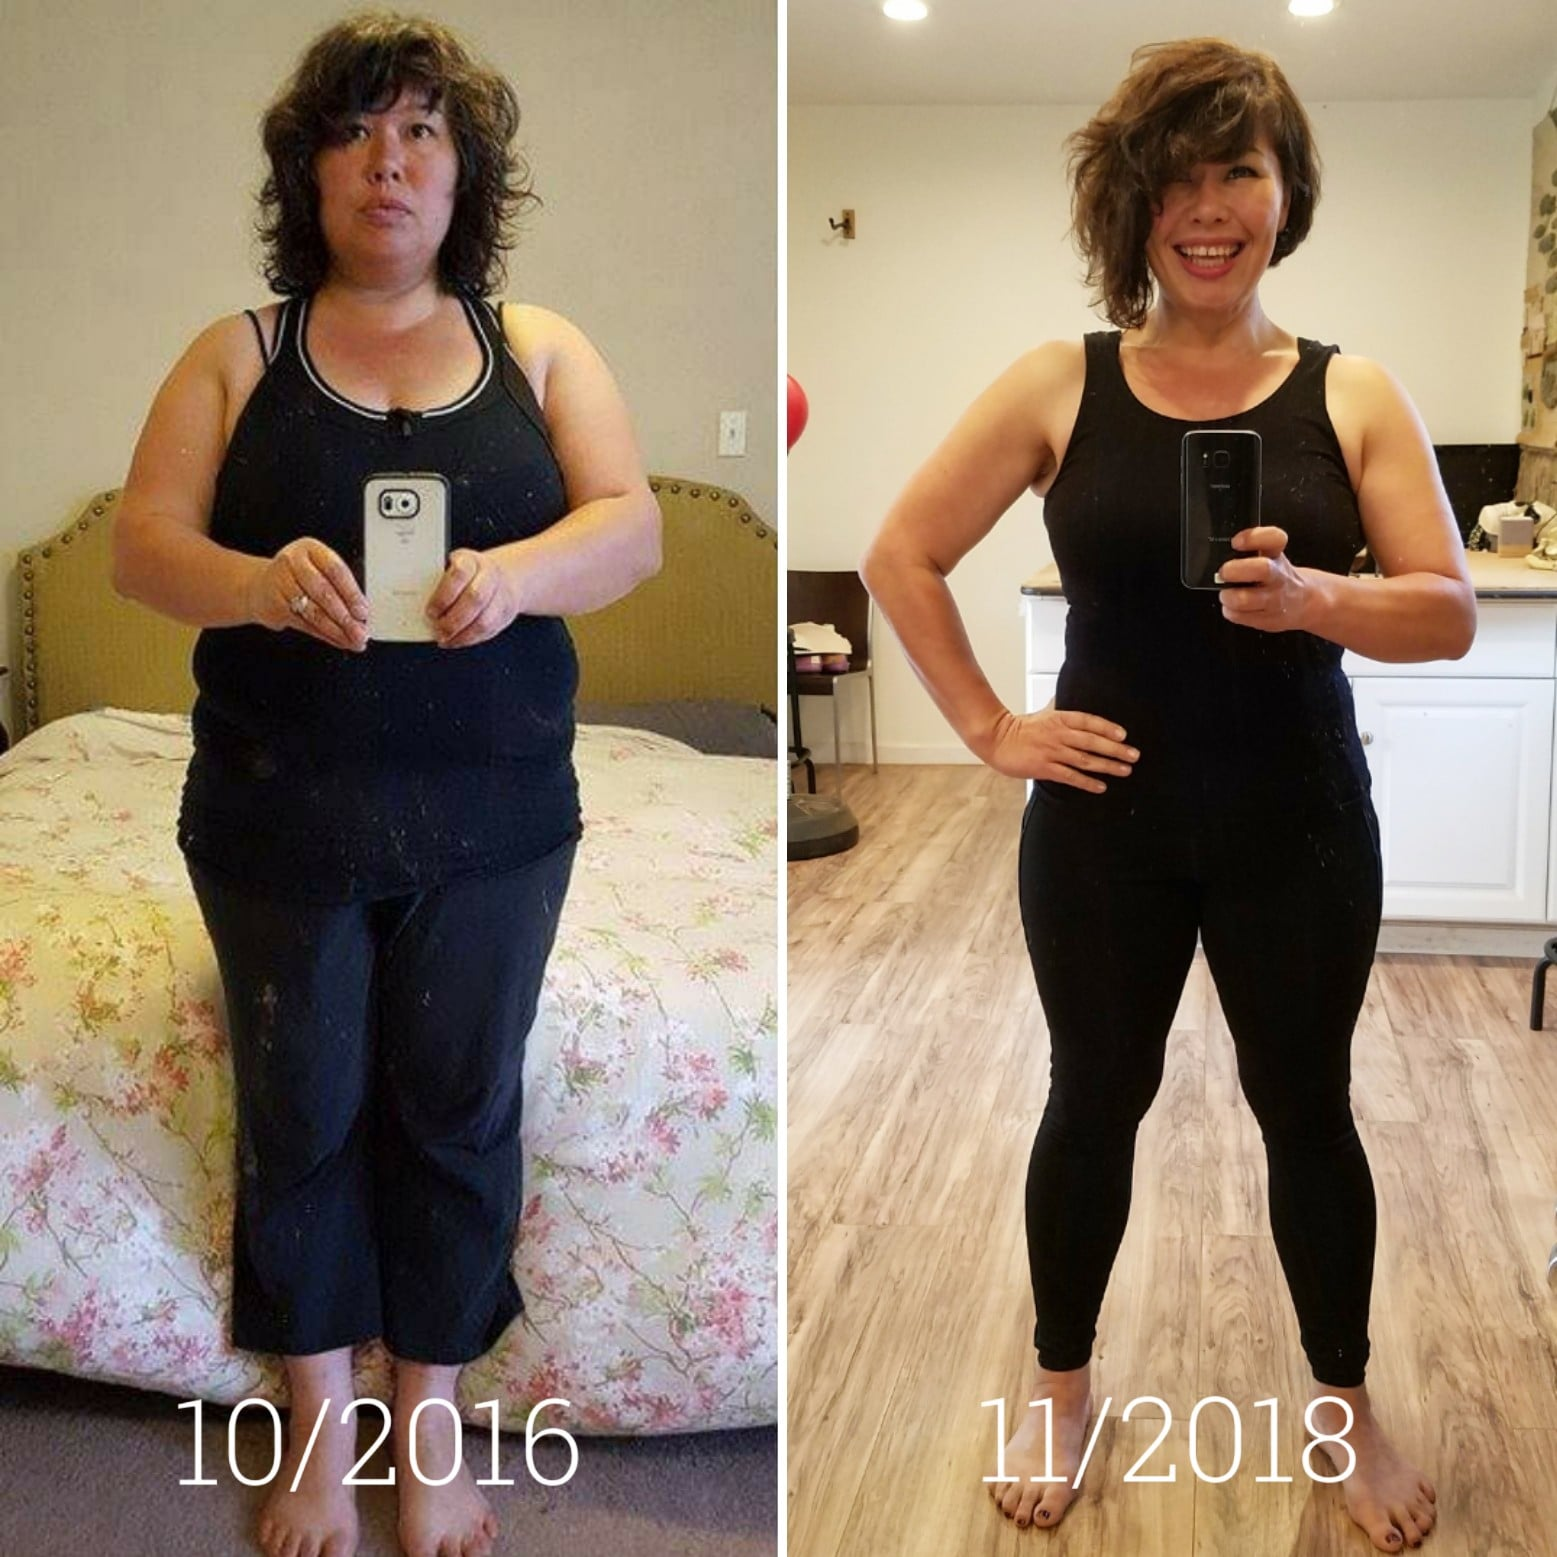 100 Pound Weight Loss From Walking Popsugar Fitness